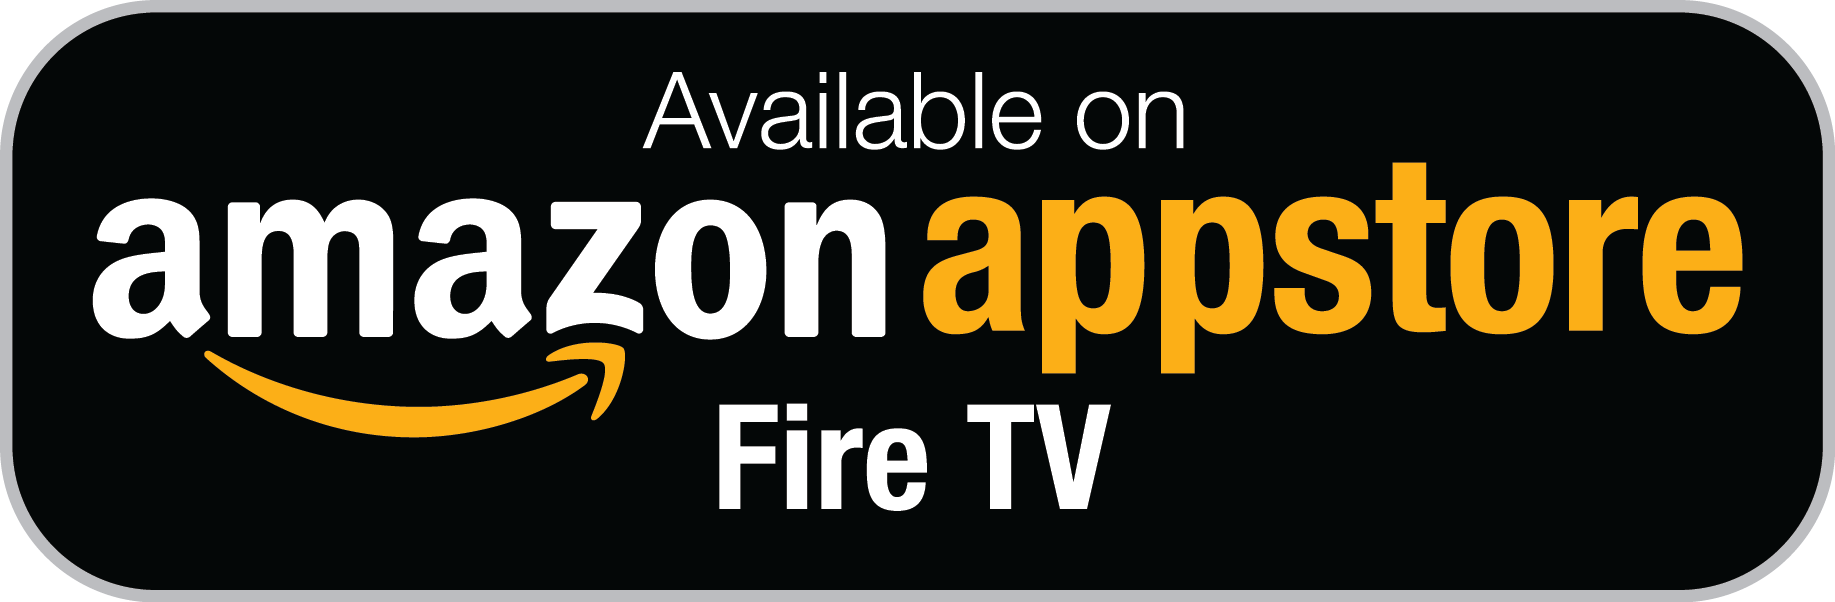 MarketCast for Amazon Fire TV